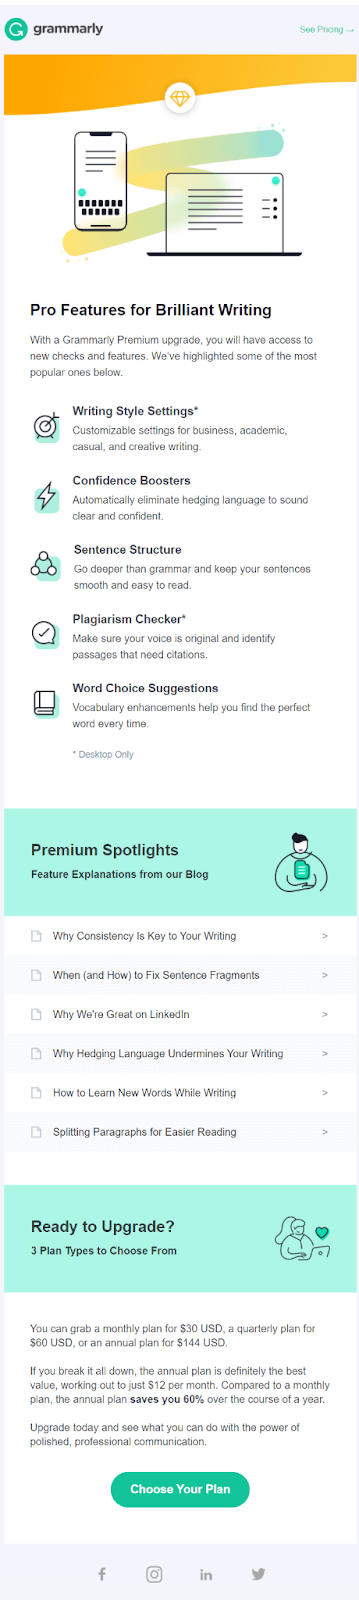 Onboarding example Grammarly #4